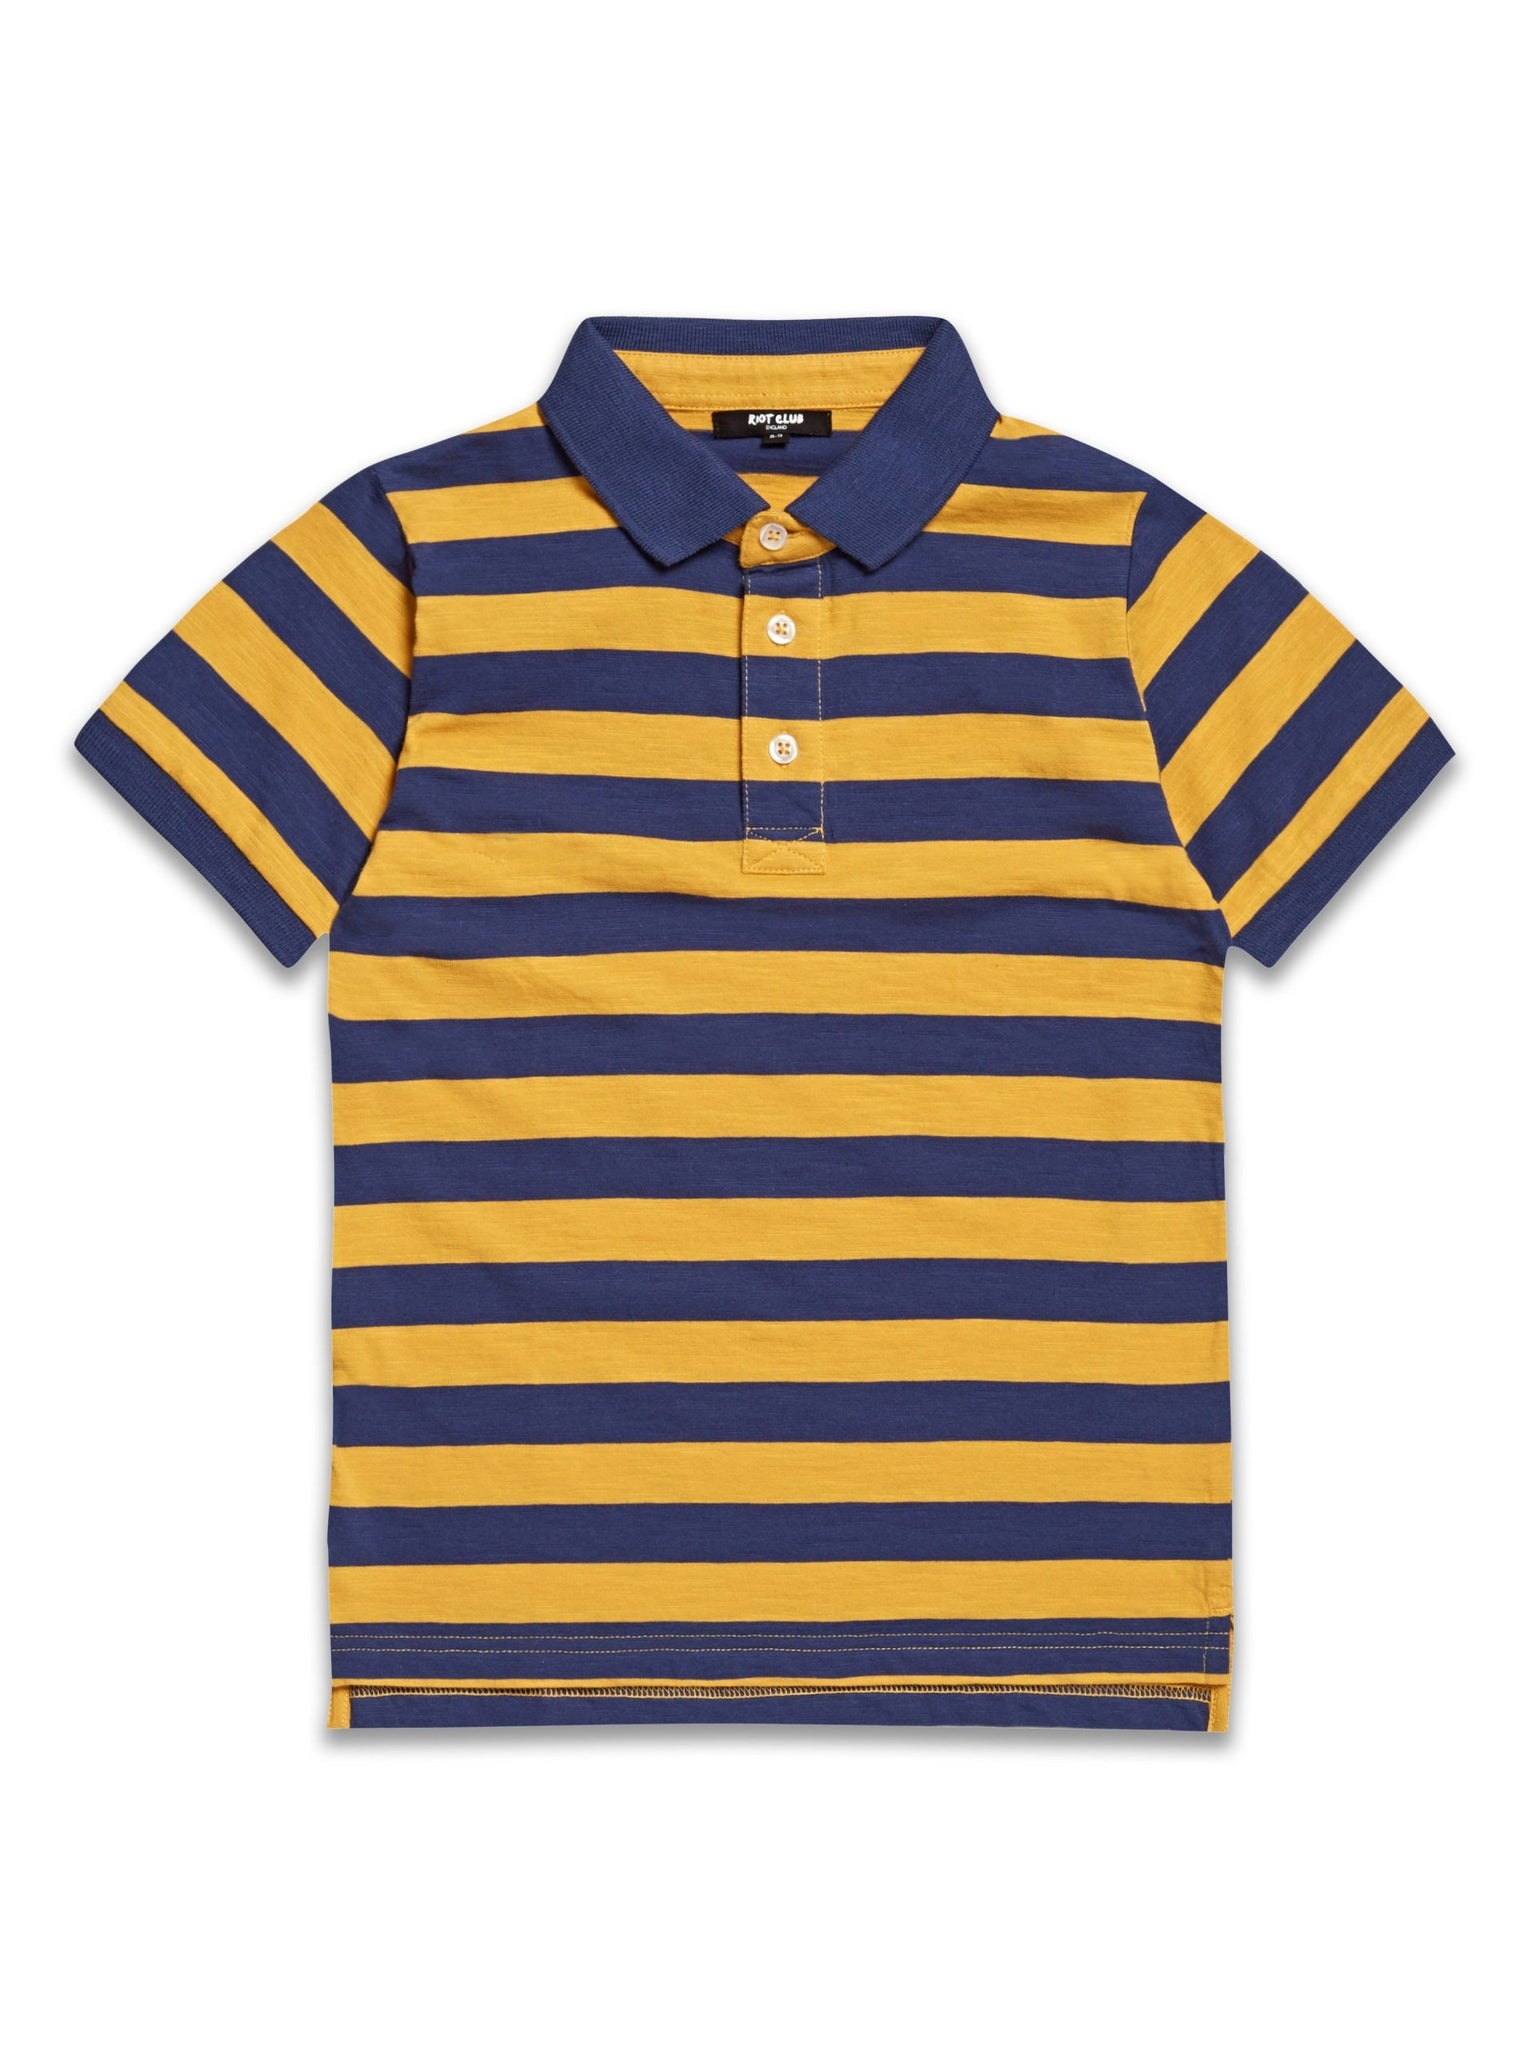 Riot Club Navy Mustard Polo Shirt